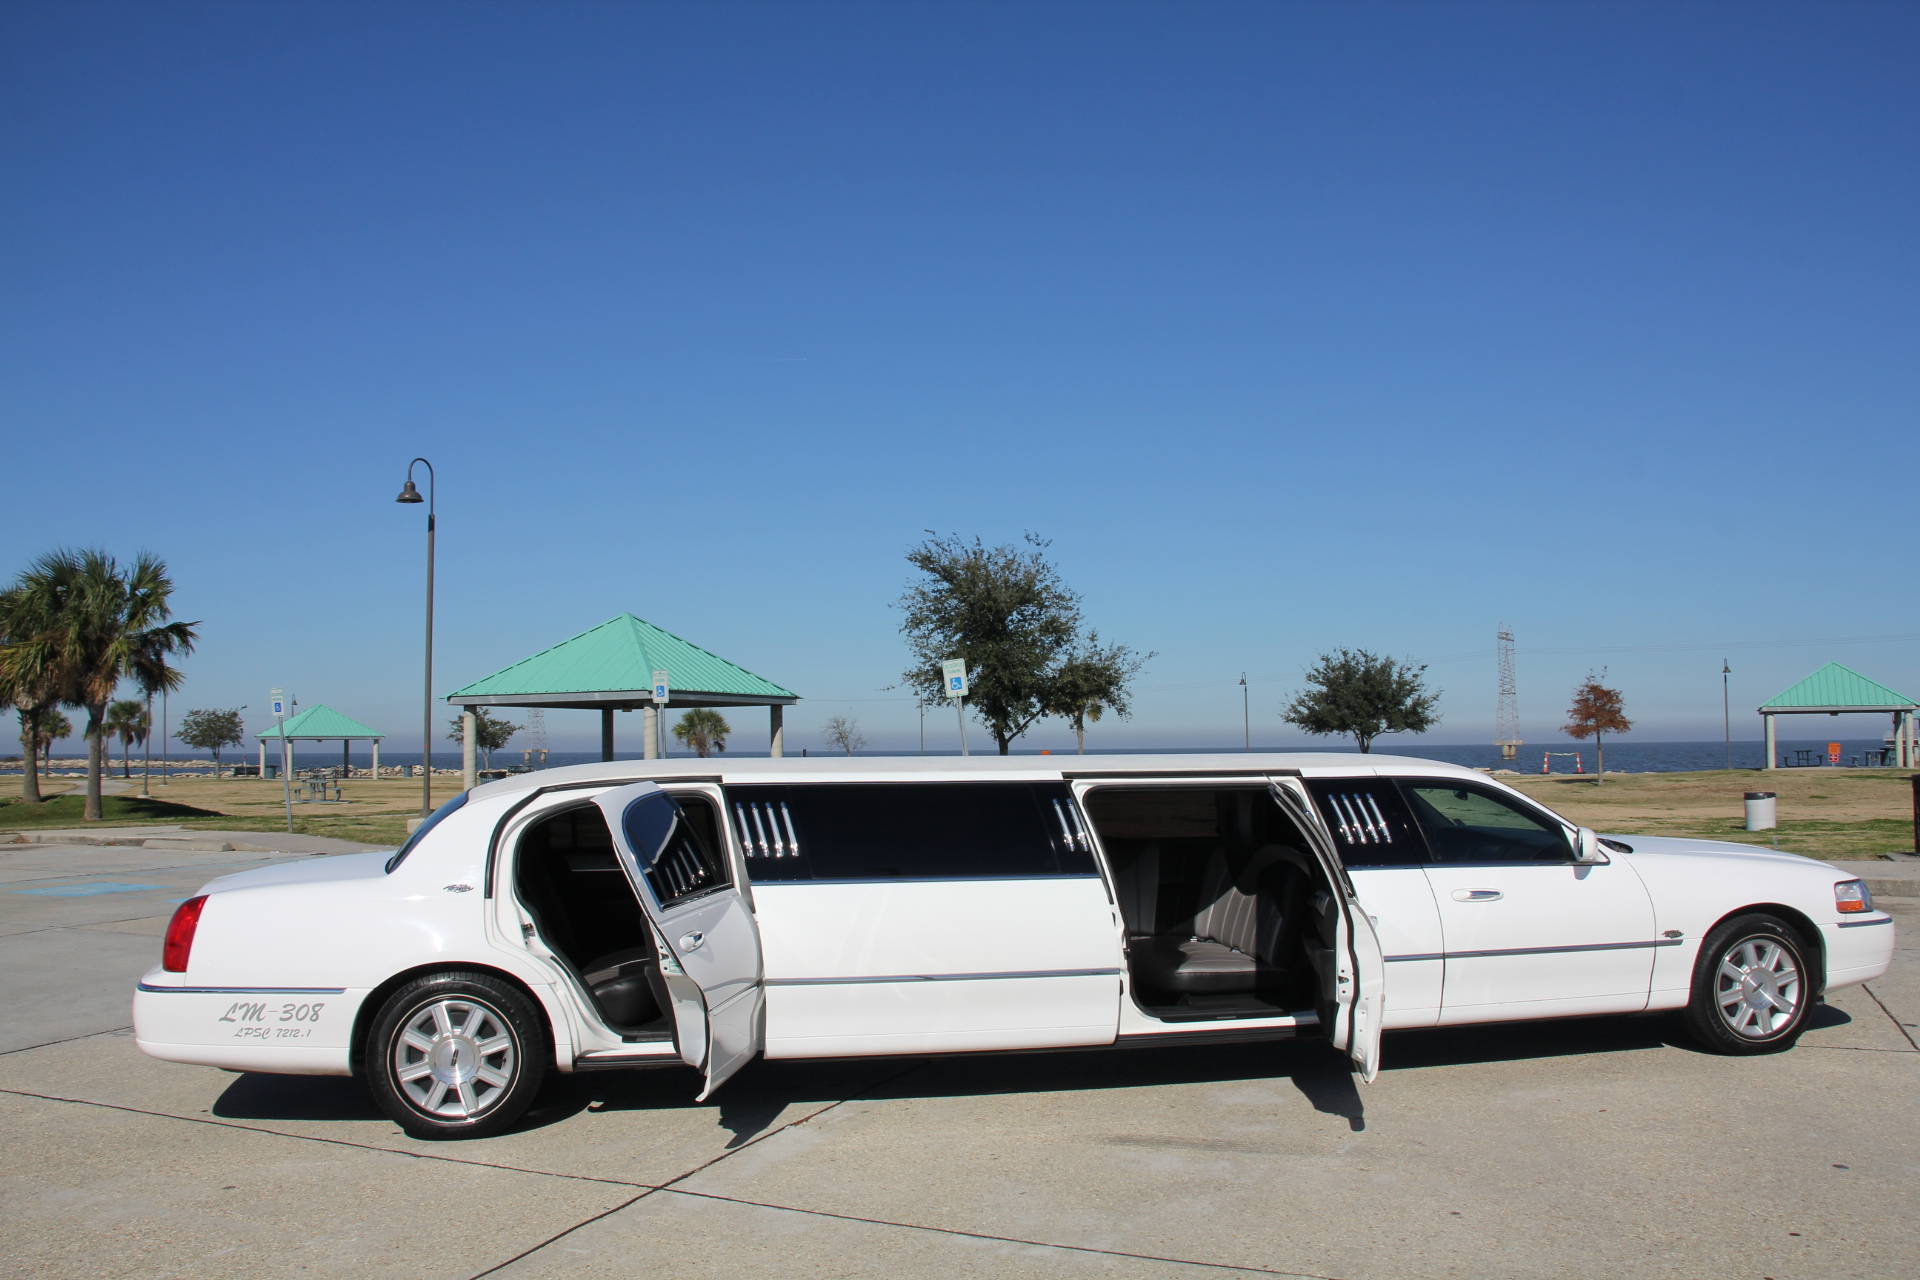 5th door new orleans limo